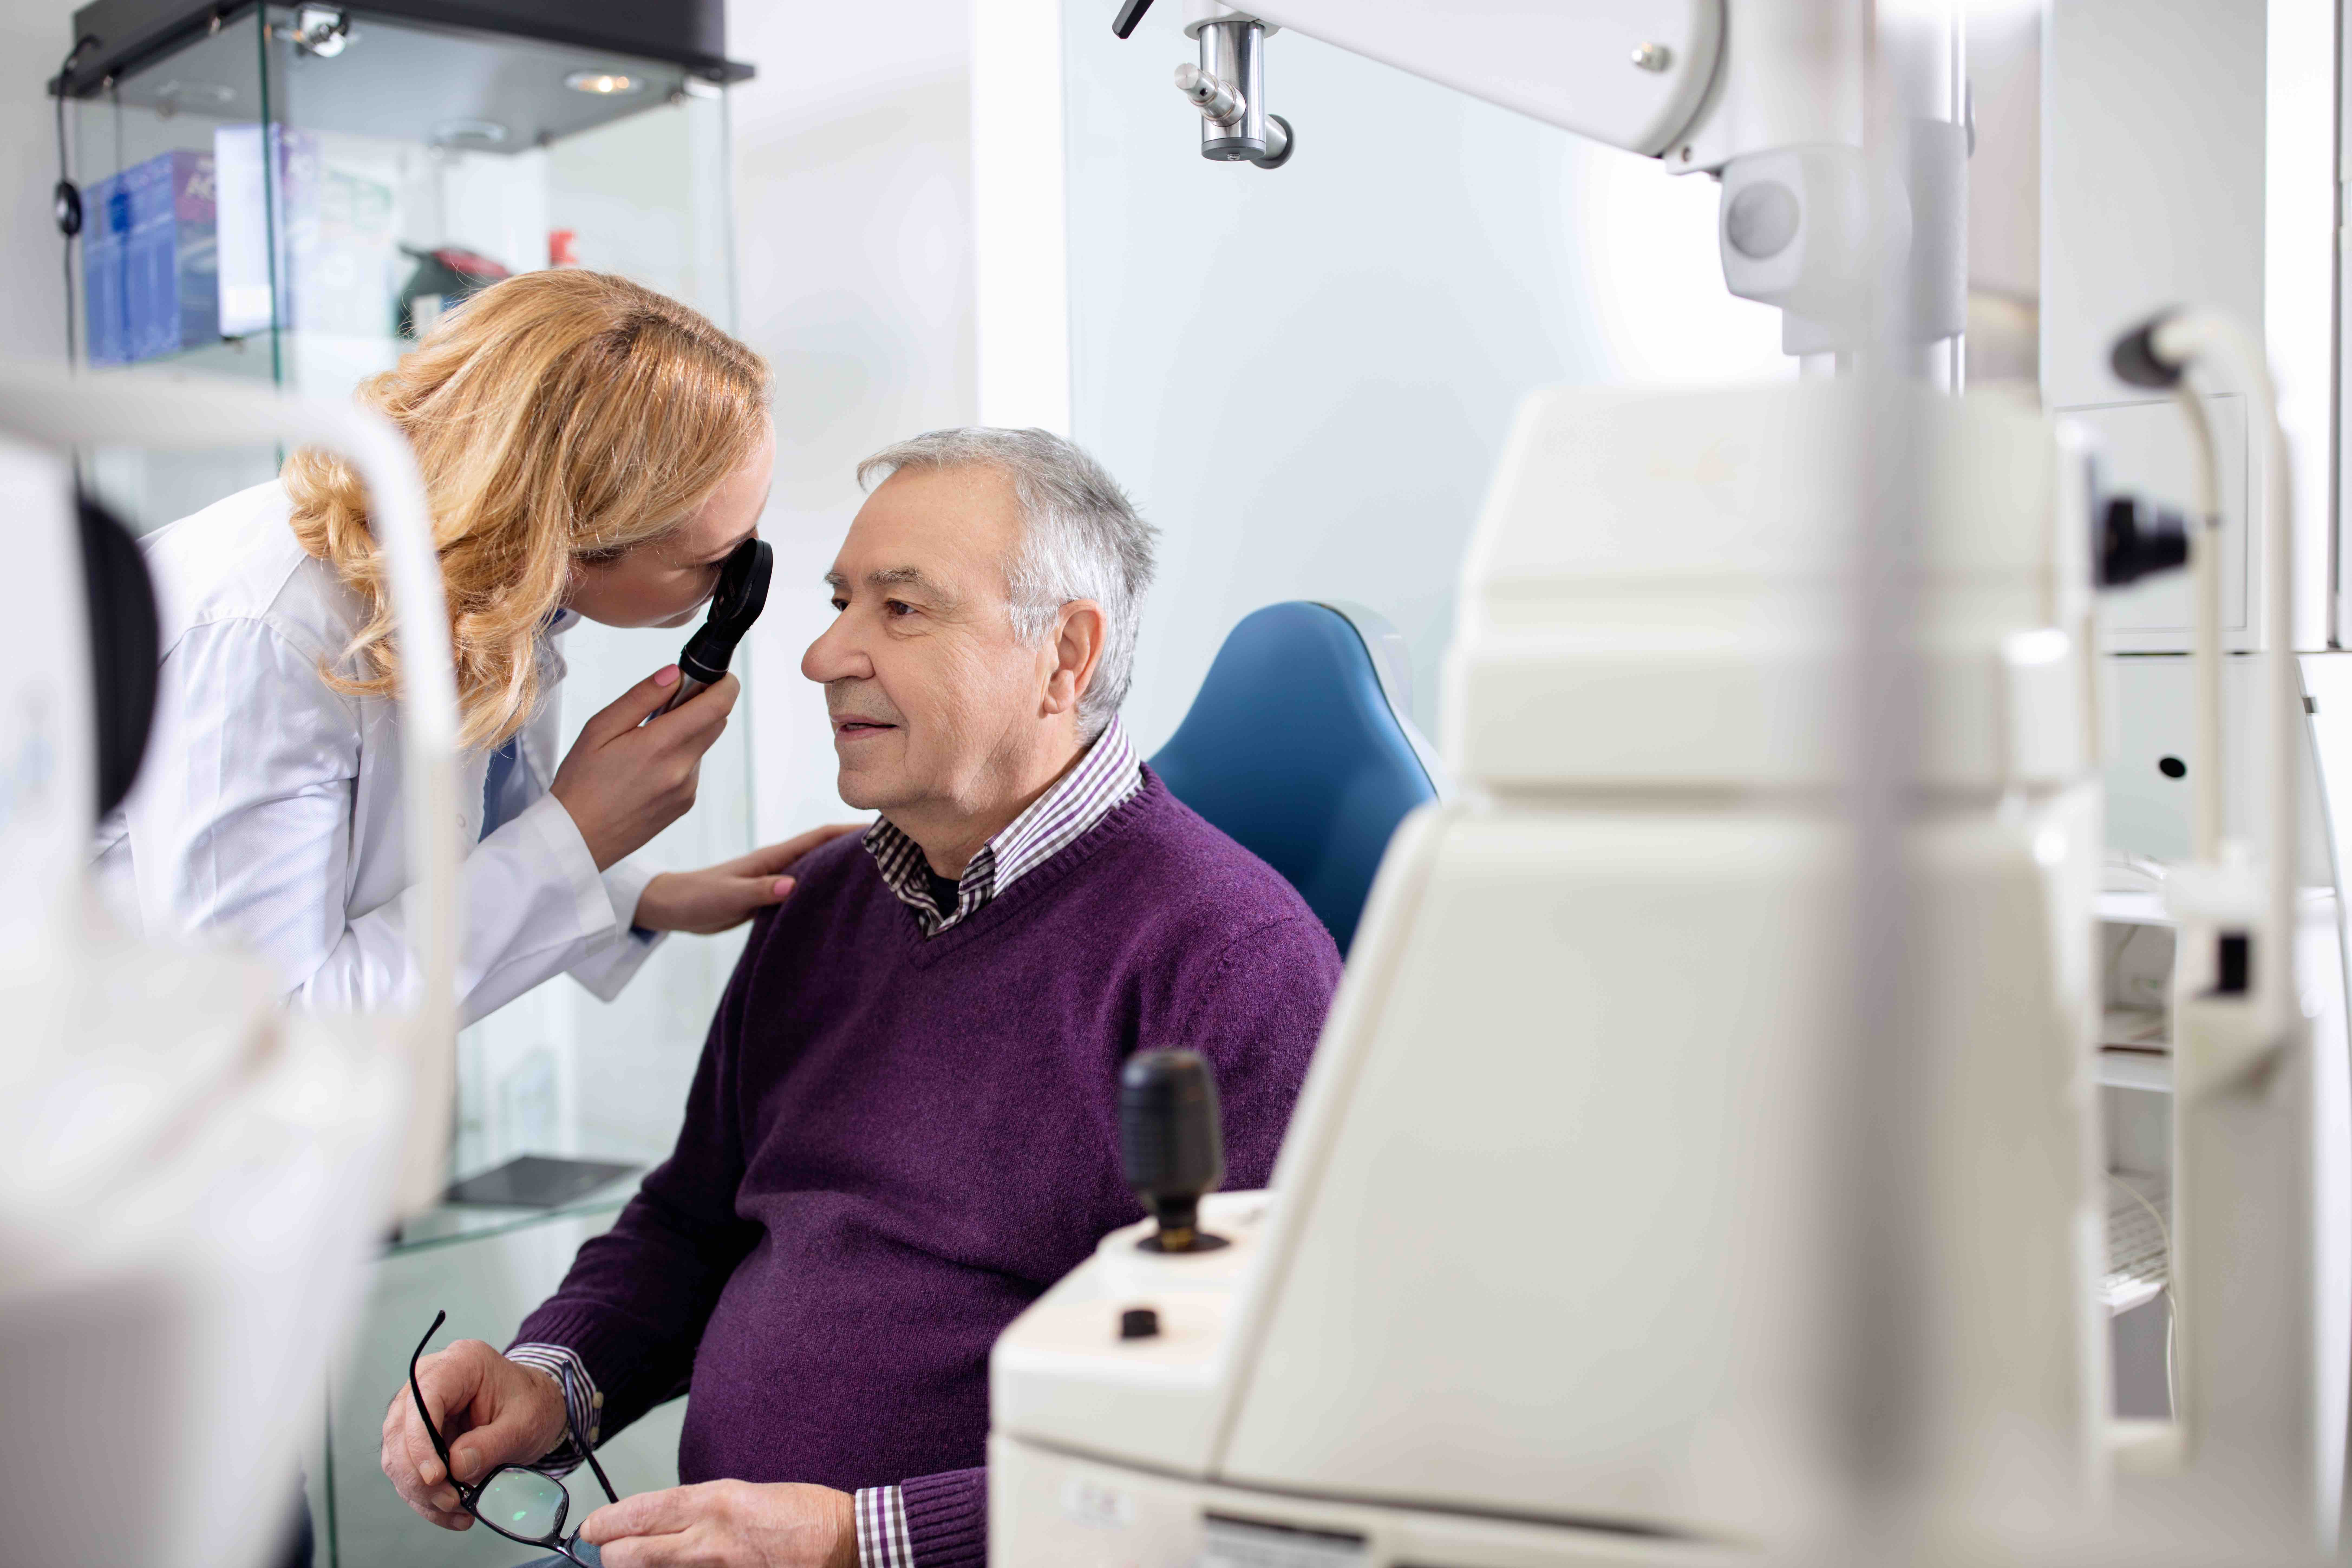 Eye care professionals warn that those facing degenerative eye conditions risk vision loss if they don't take care of their eye health during the pandemic.  (Lucky Business/Shutterstock)